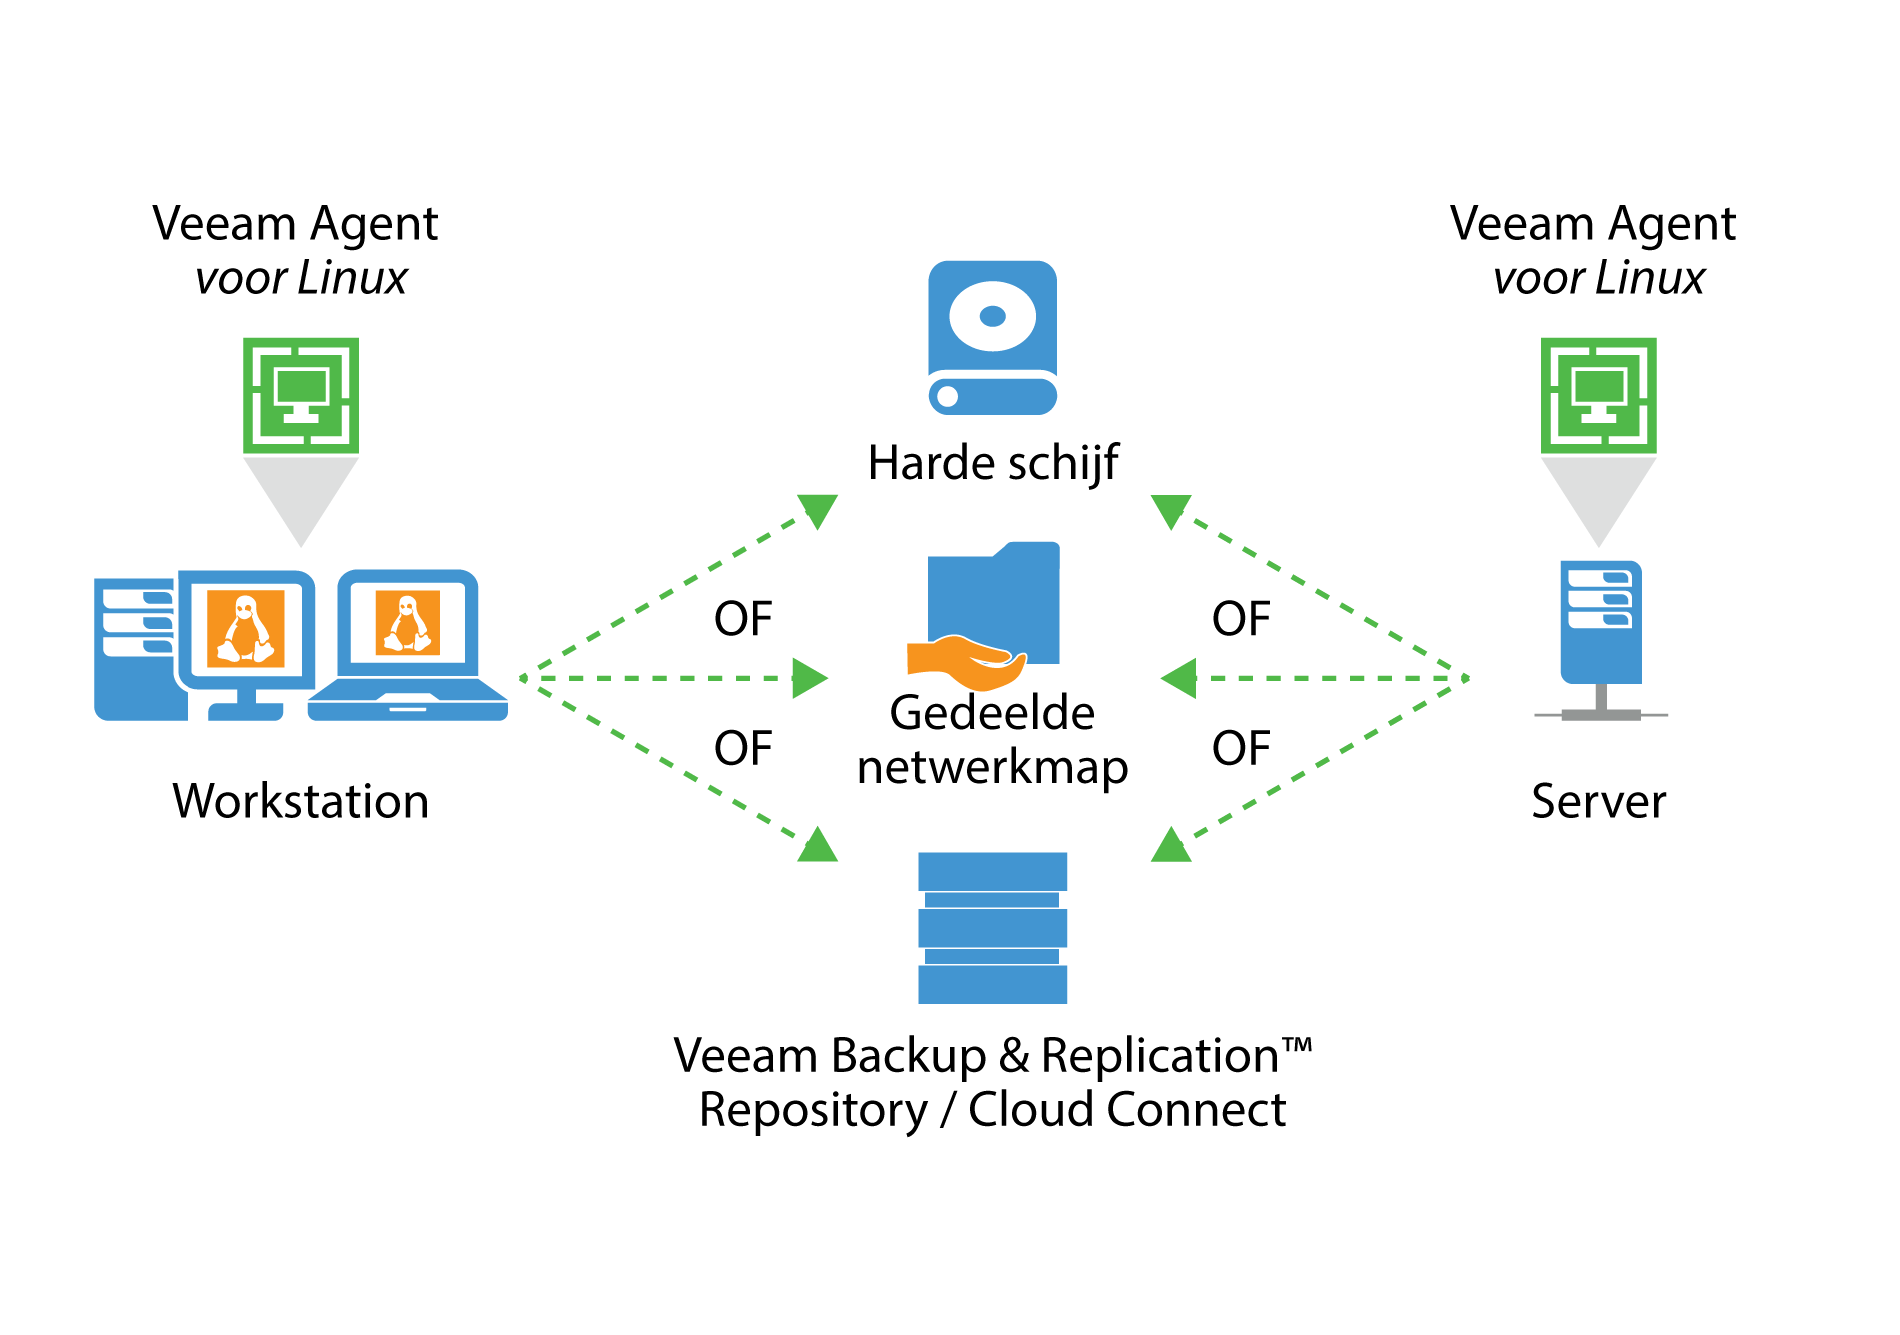 veeam_endpoint_how_it_works_for_linux_nl.png